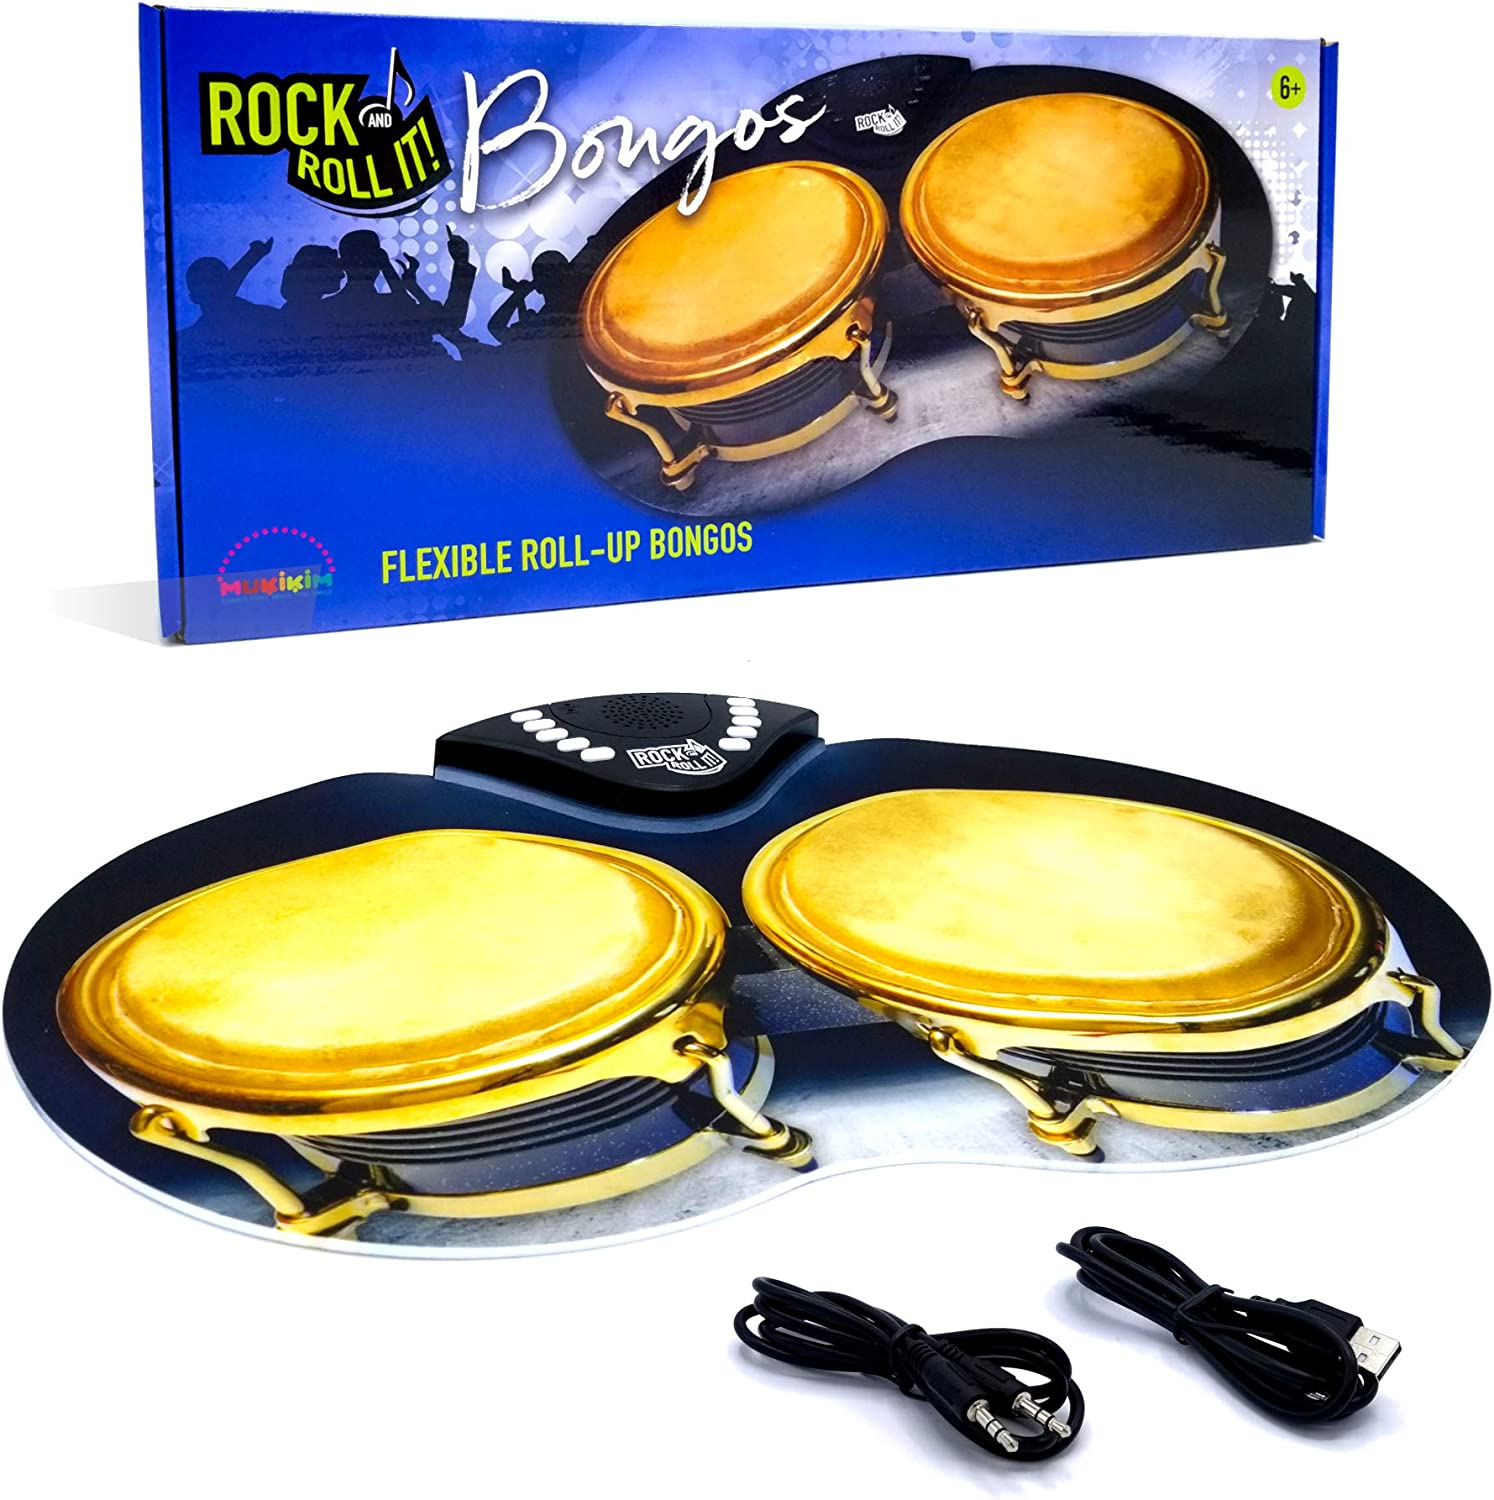 Rock and New mail order Roll It – H Electronic Bongos. Popular brand in the world Portable Flexible